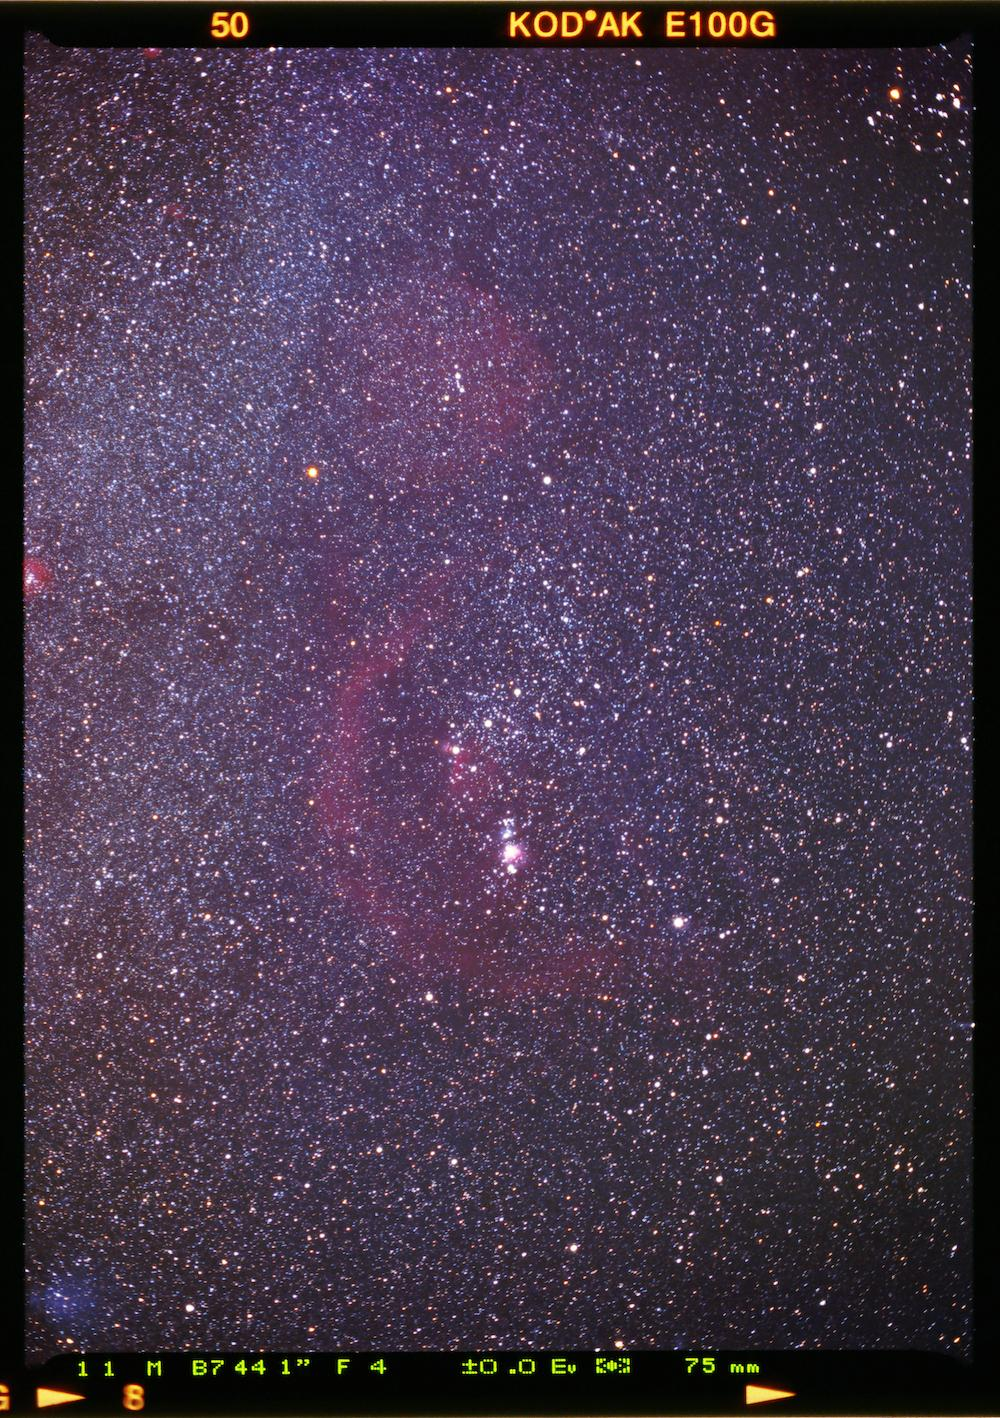 An image showing ''Slide' to the past - Orion Constellation and its nebulas on positive film'